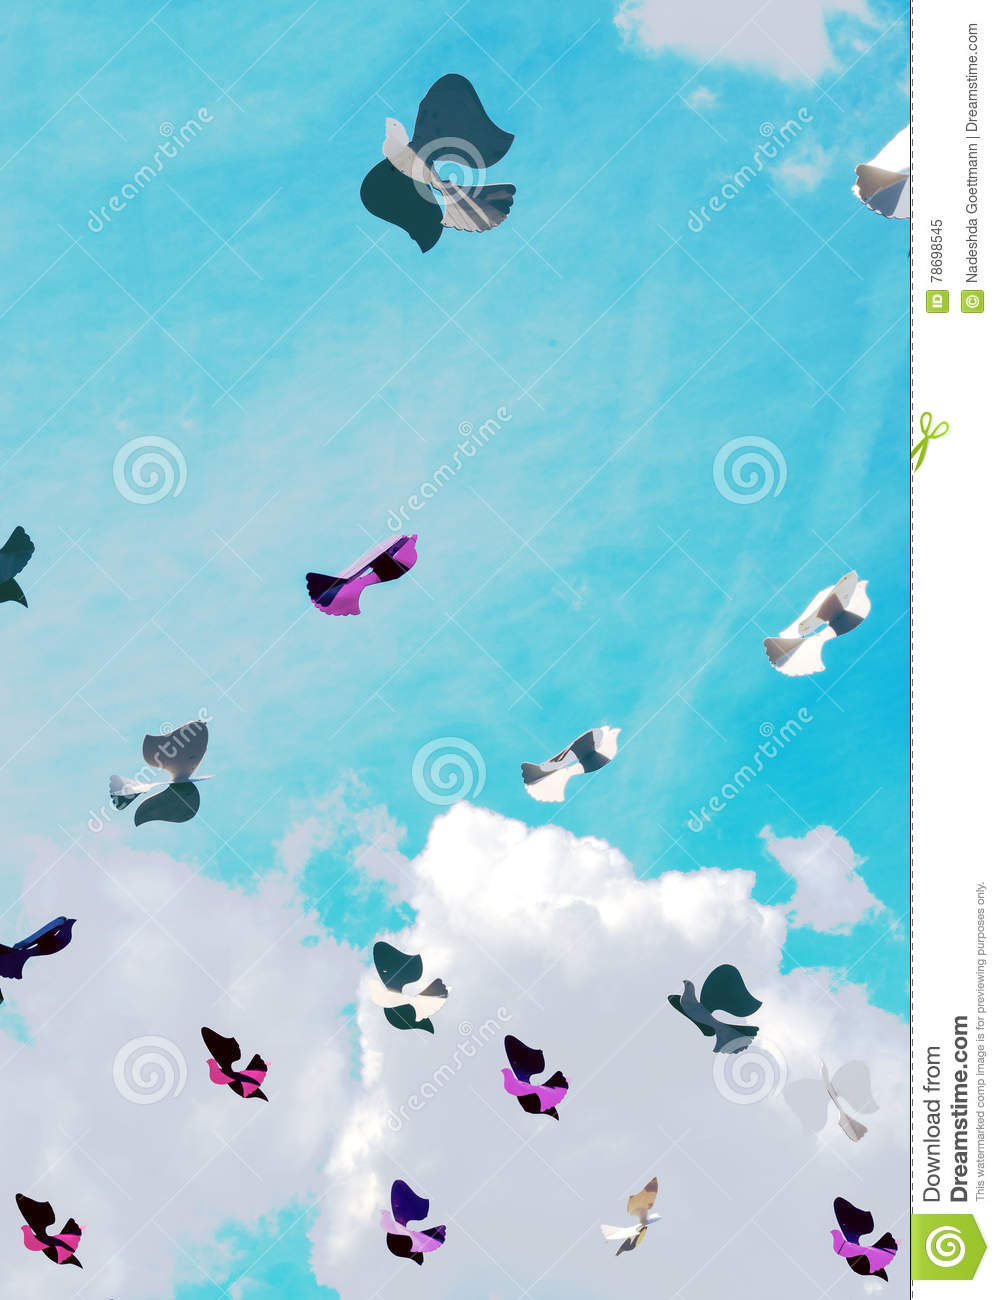 Paper bird in the sky with clouds